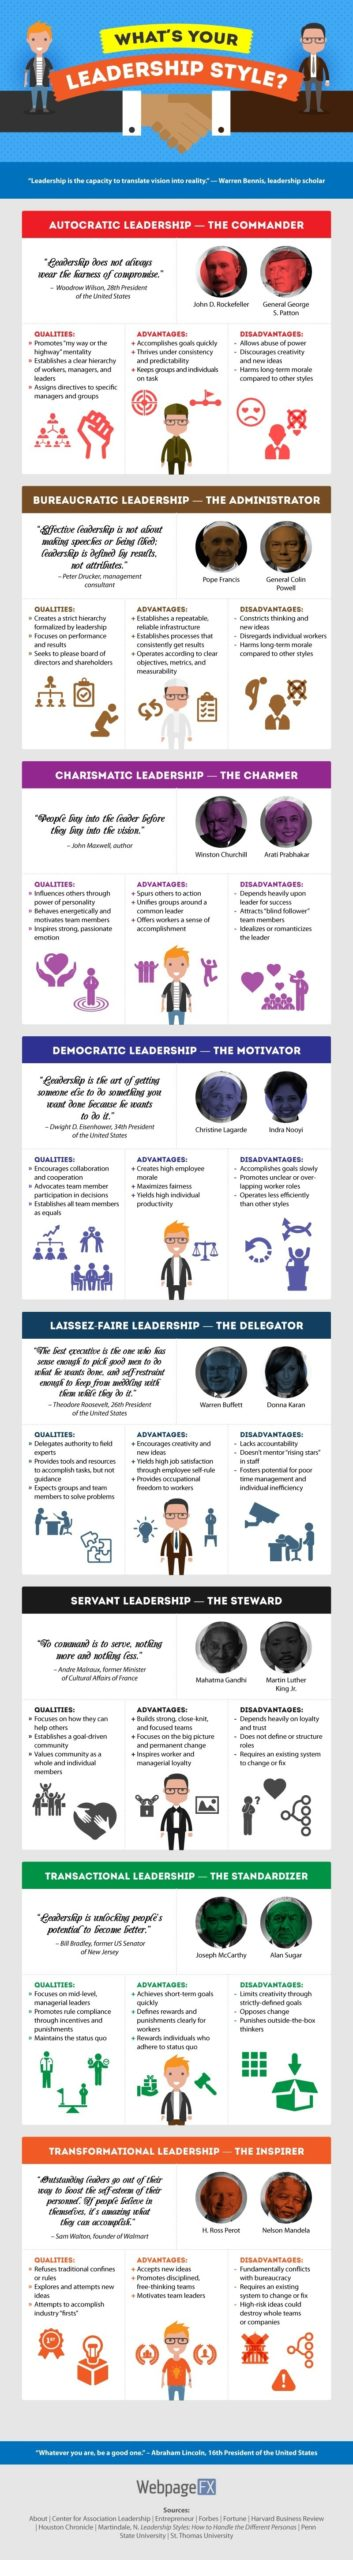 What's Your Leadership Style? Infographic